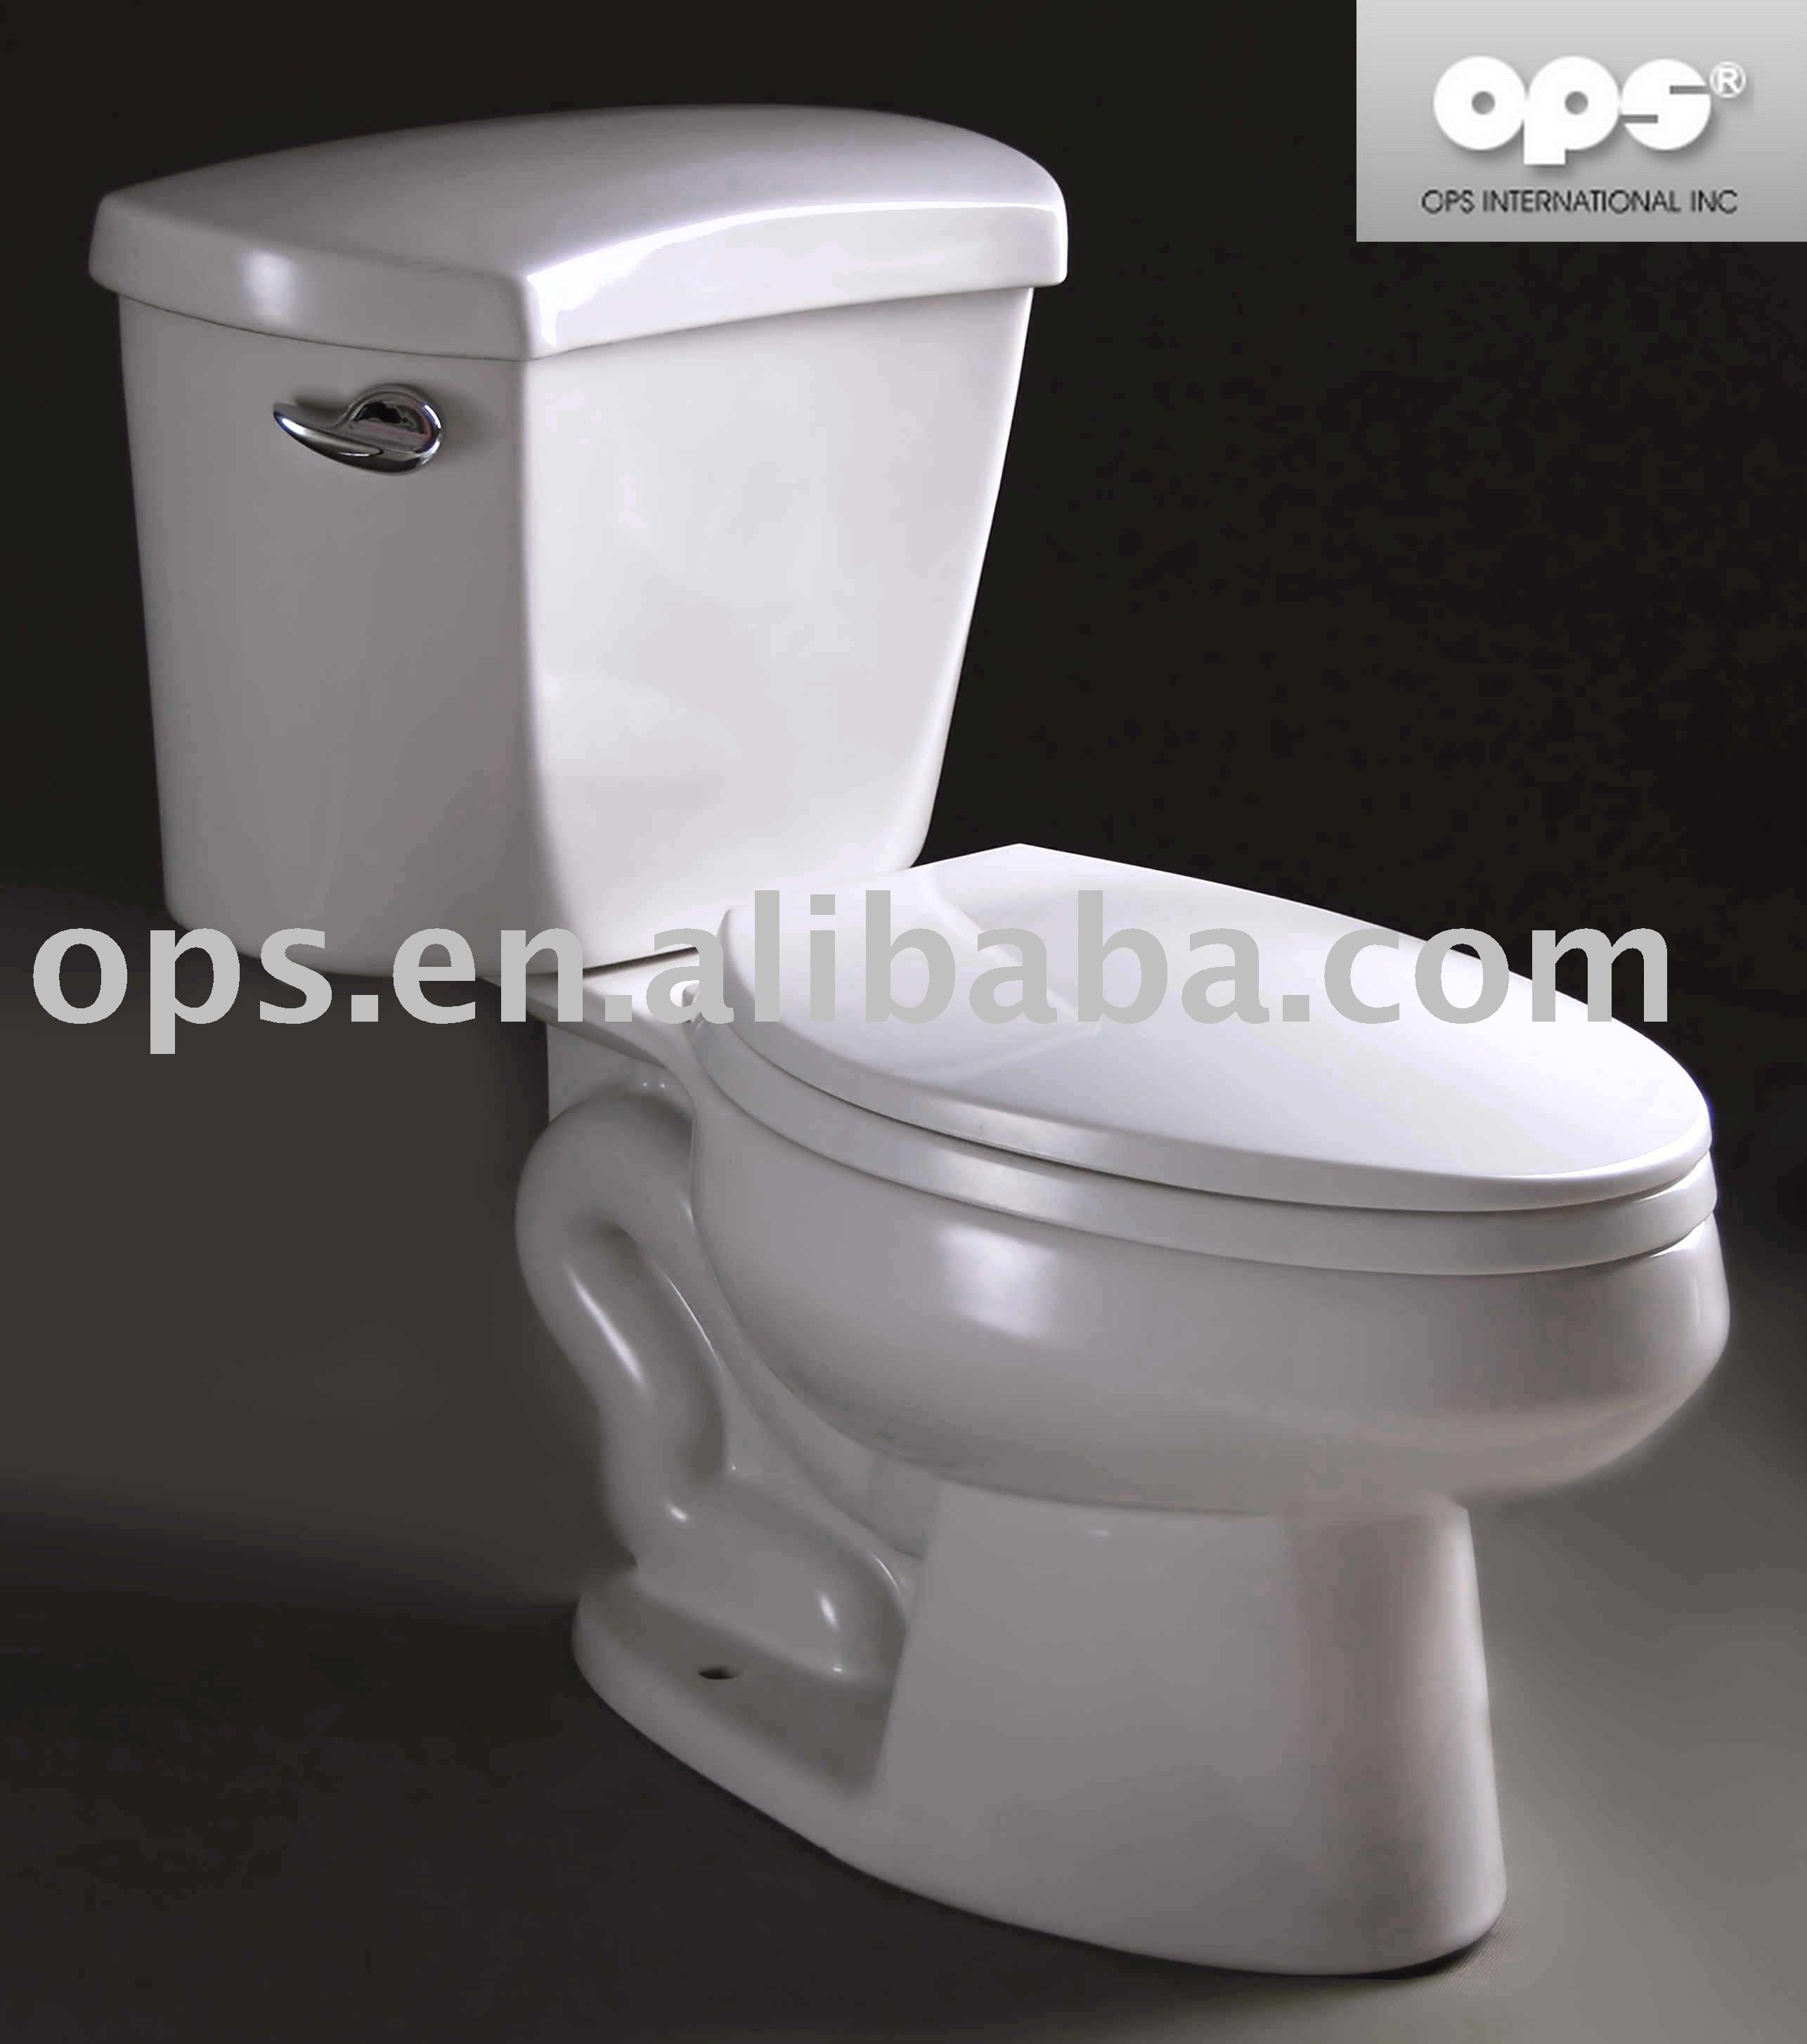 Kohler Wellworth Toilet >> Kohler Wellworth Two Piece Toilet Upc Certified Buy Toilet Ceramic Toilet Sanitary Ware Product On Alibaba Com